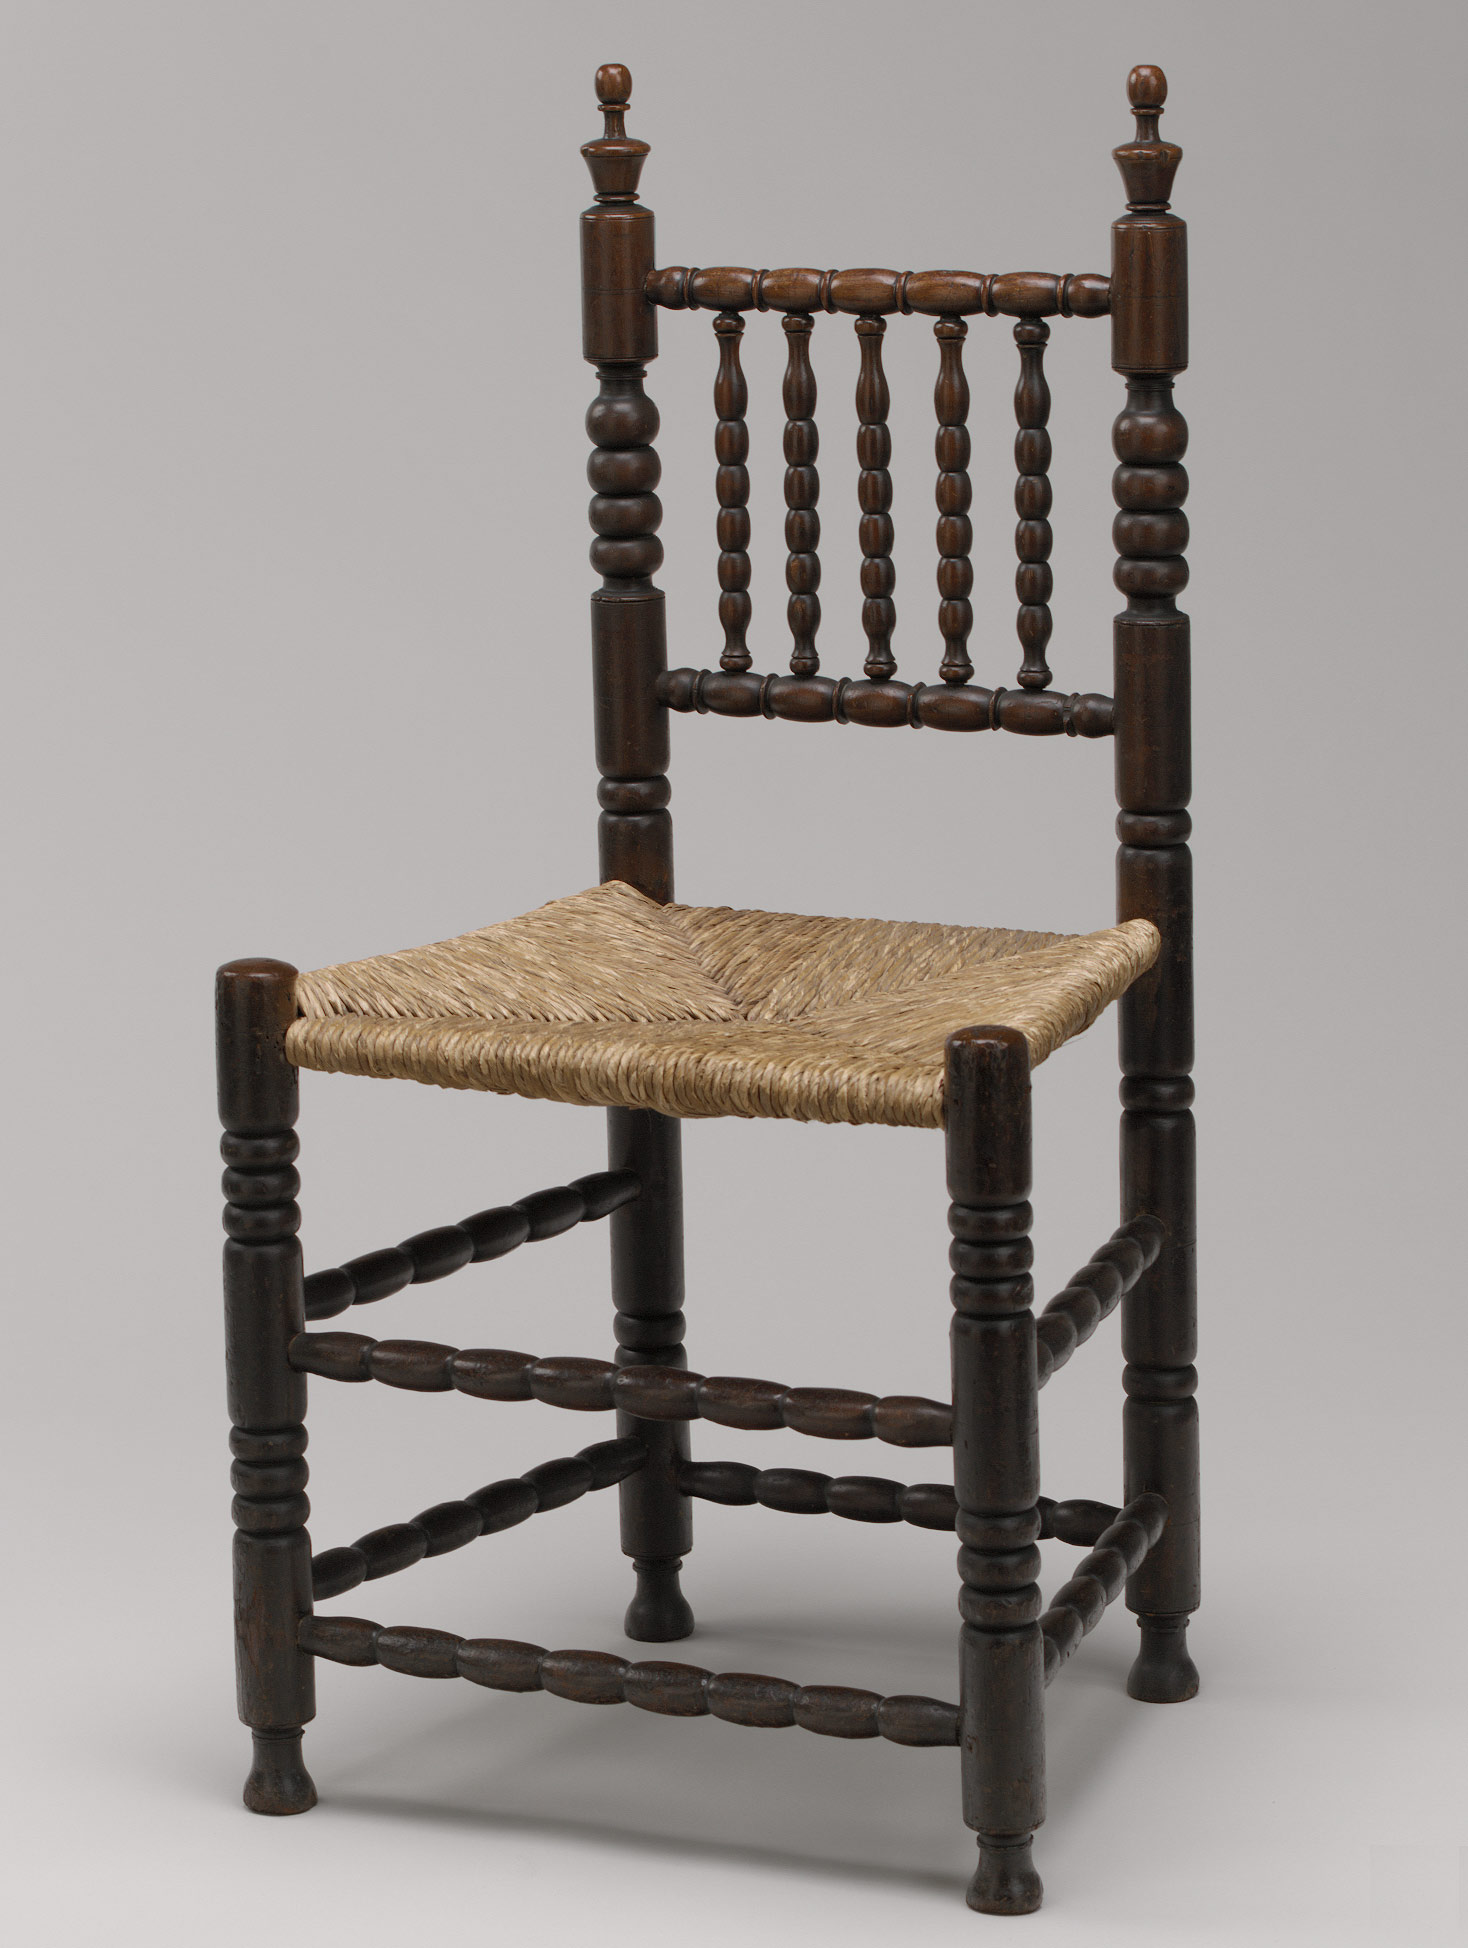 Colonial Chair Architecture Furniture And Silver From Colonial Dutch